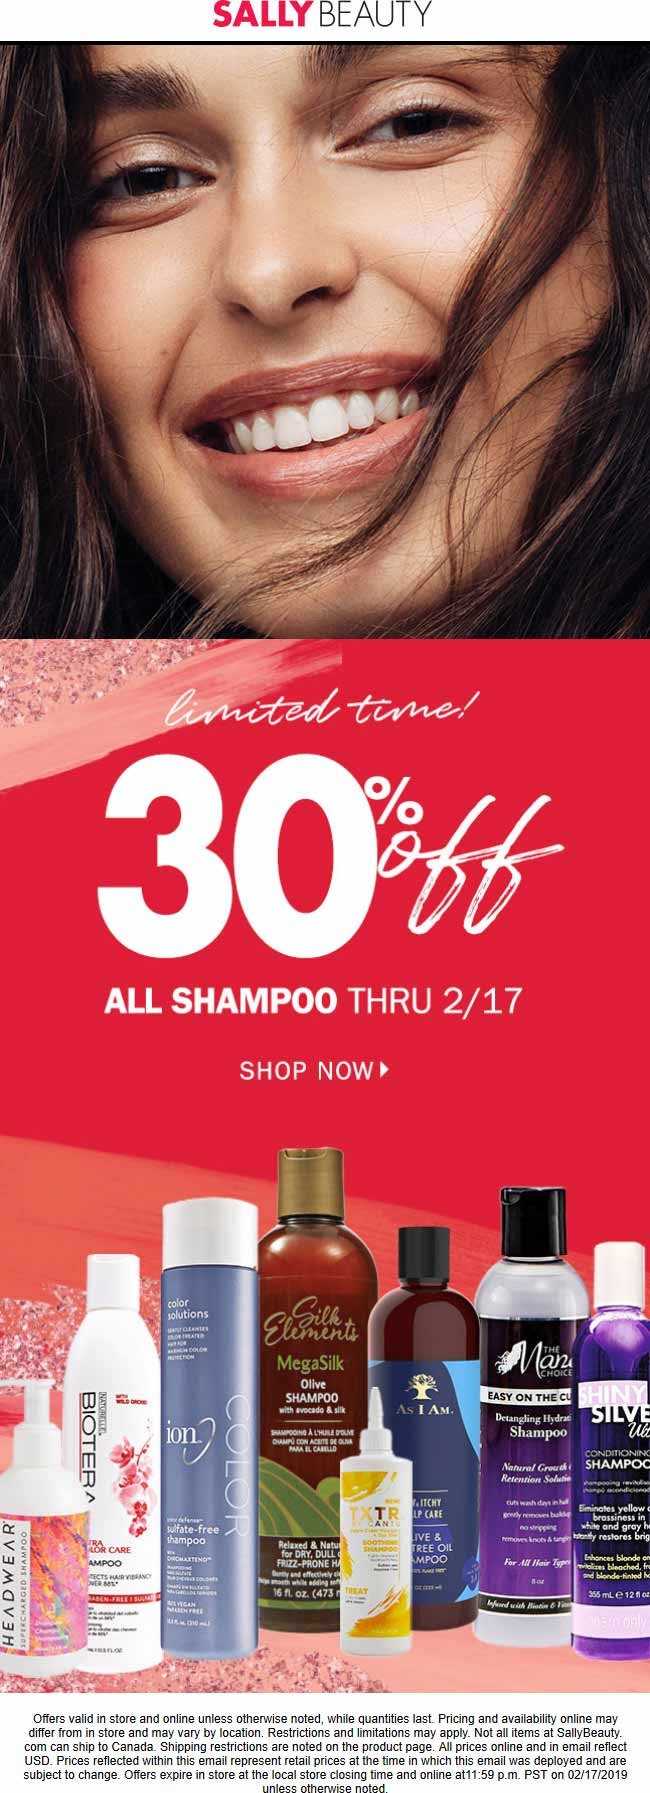 Sally Beauty Coupon July 2020 30% off all shampoo today at Sally Beauty, ditto online